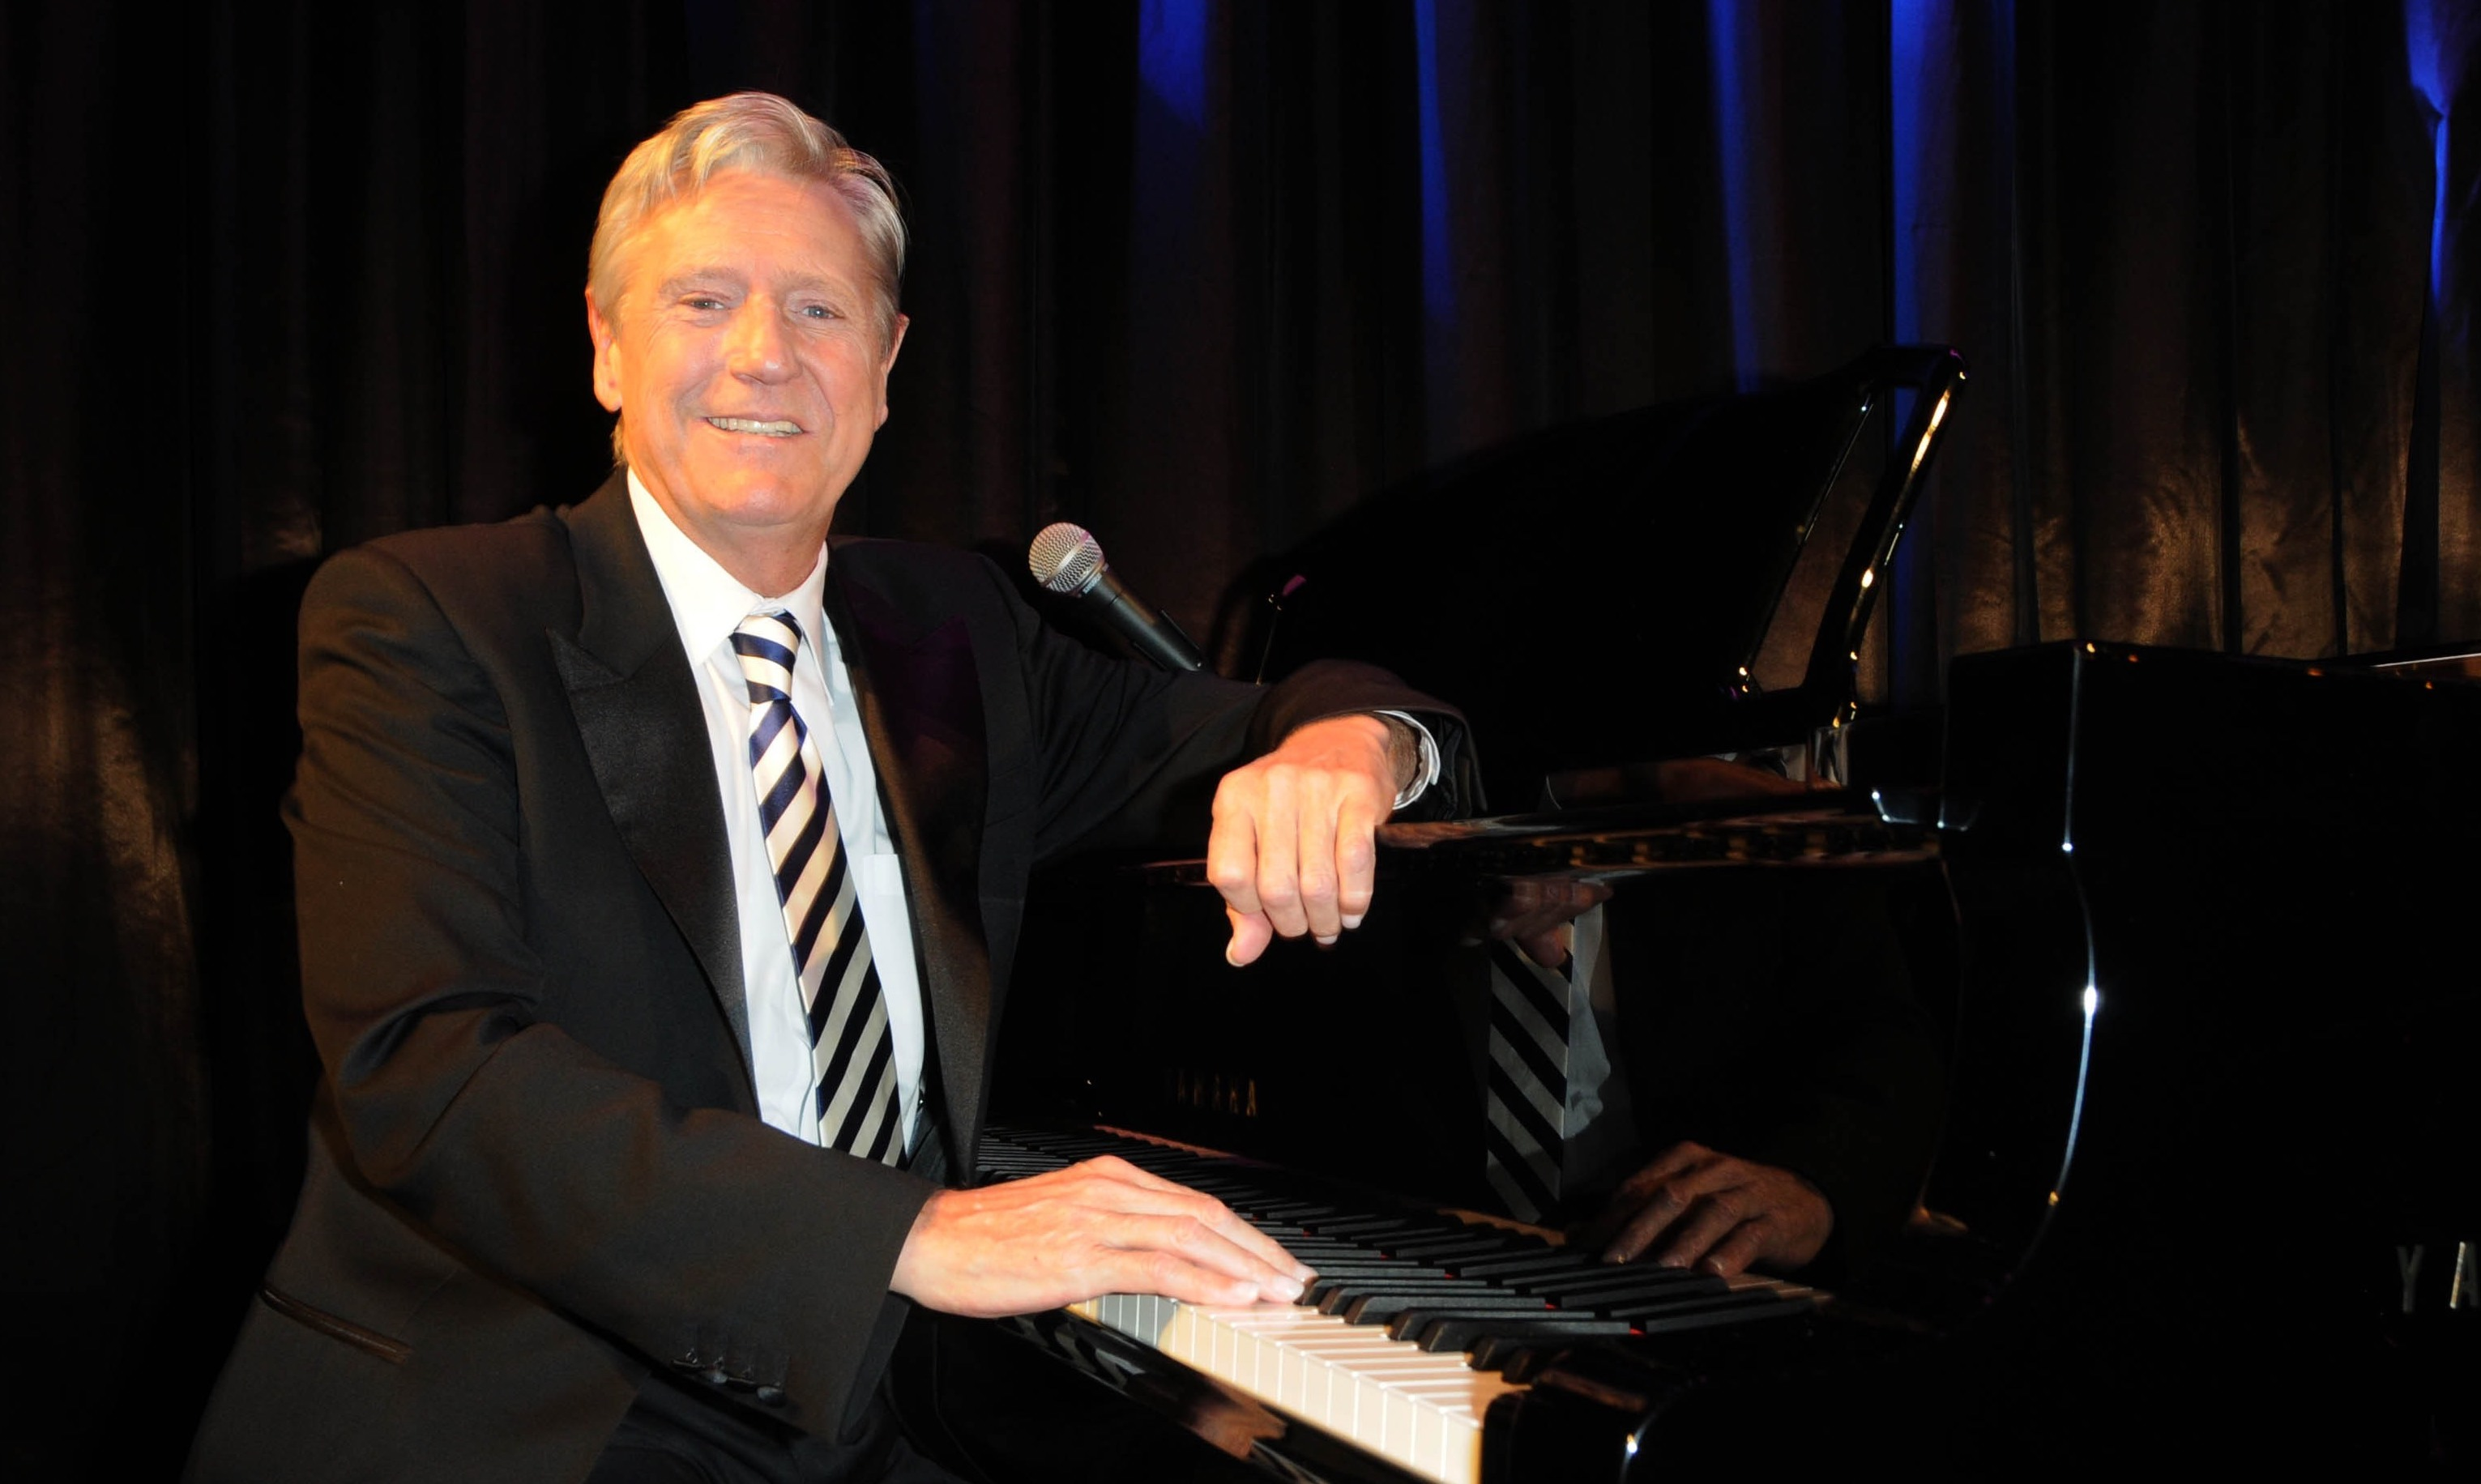 Showbiz pals pay tribute to as Joe Longthorne is laid to rest